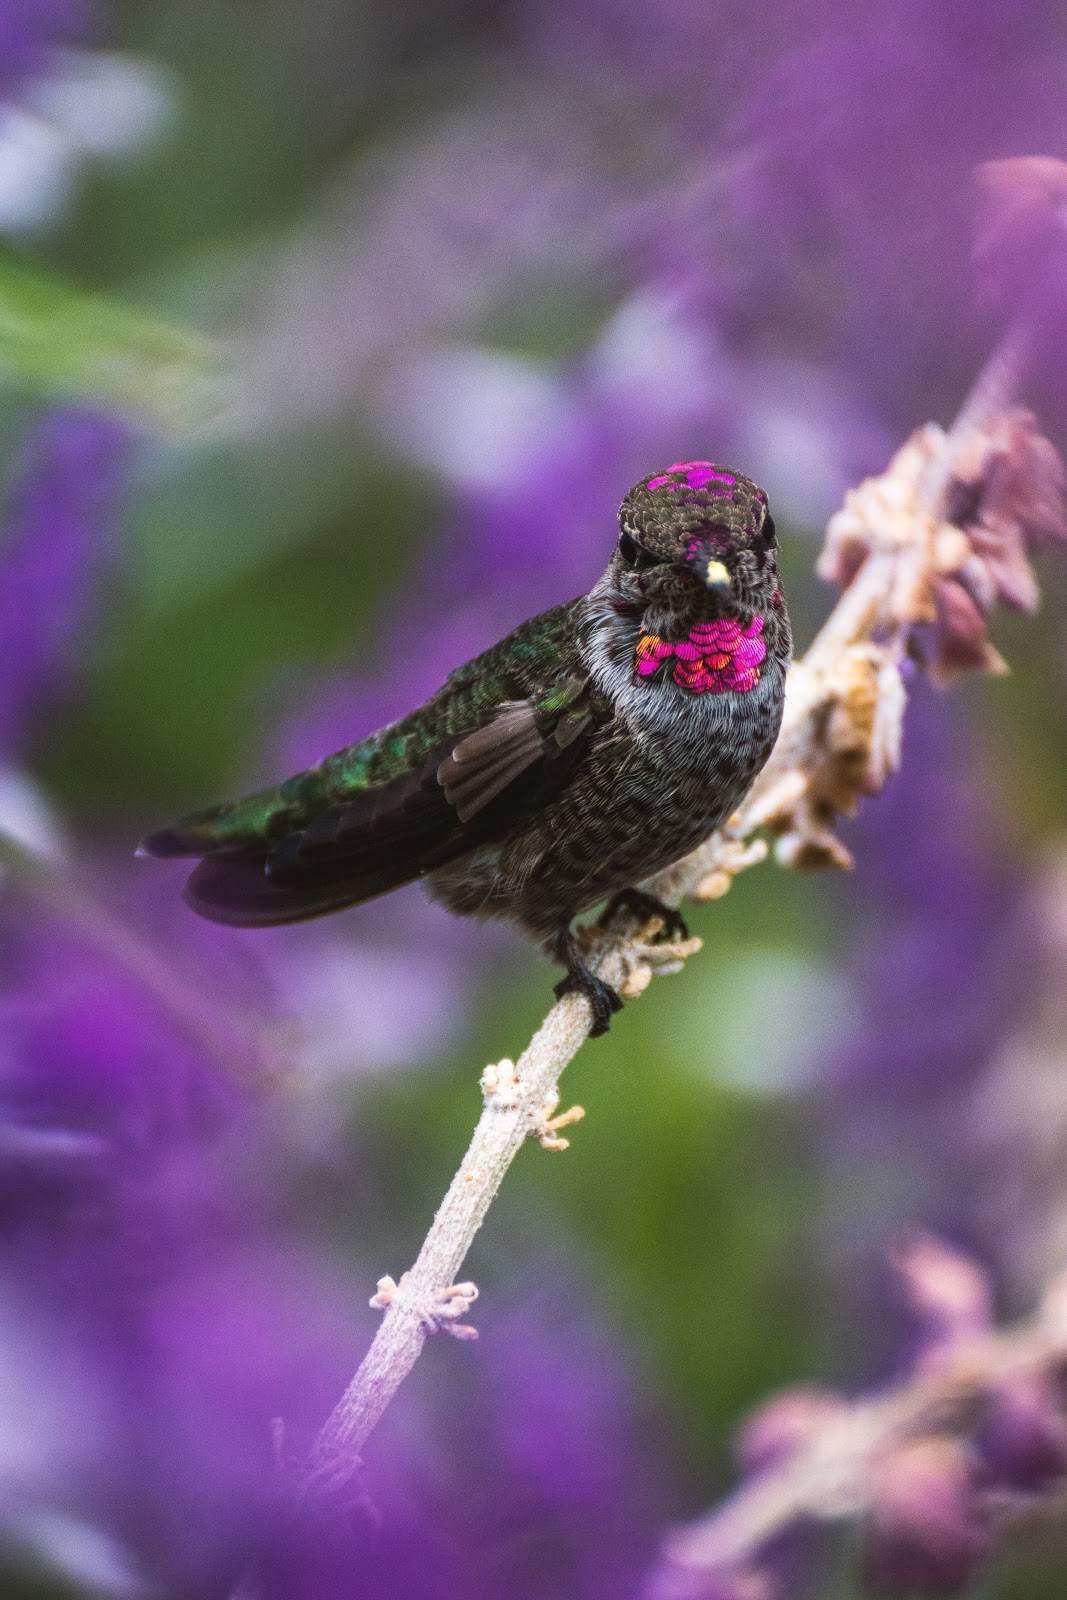 Bird surrounded by blurred purple flowers in the foreground